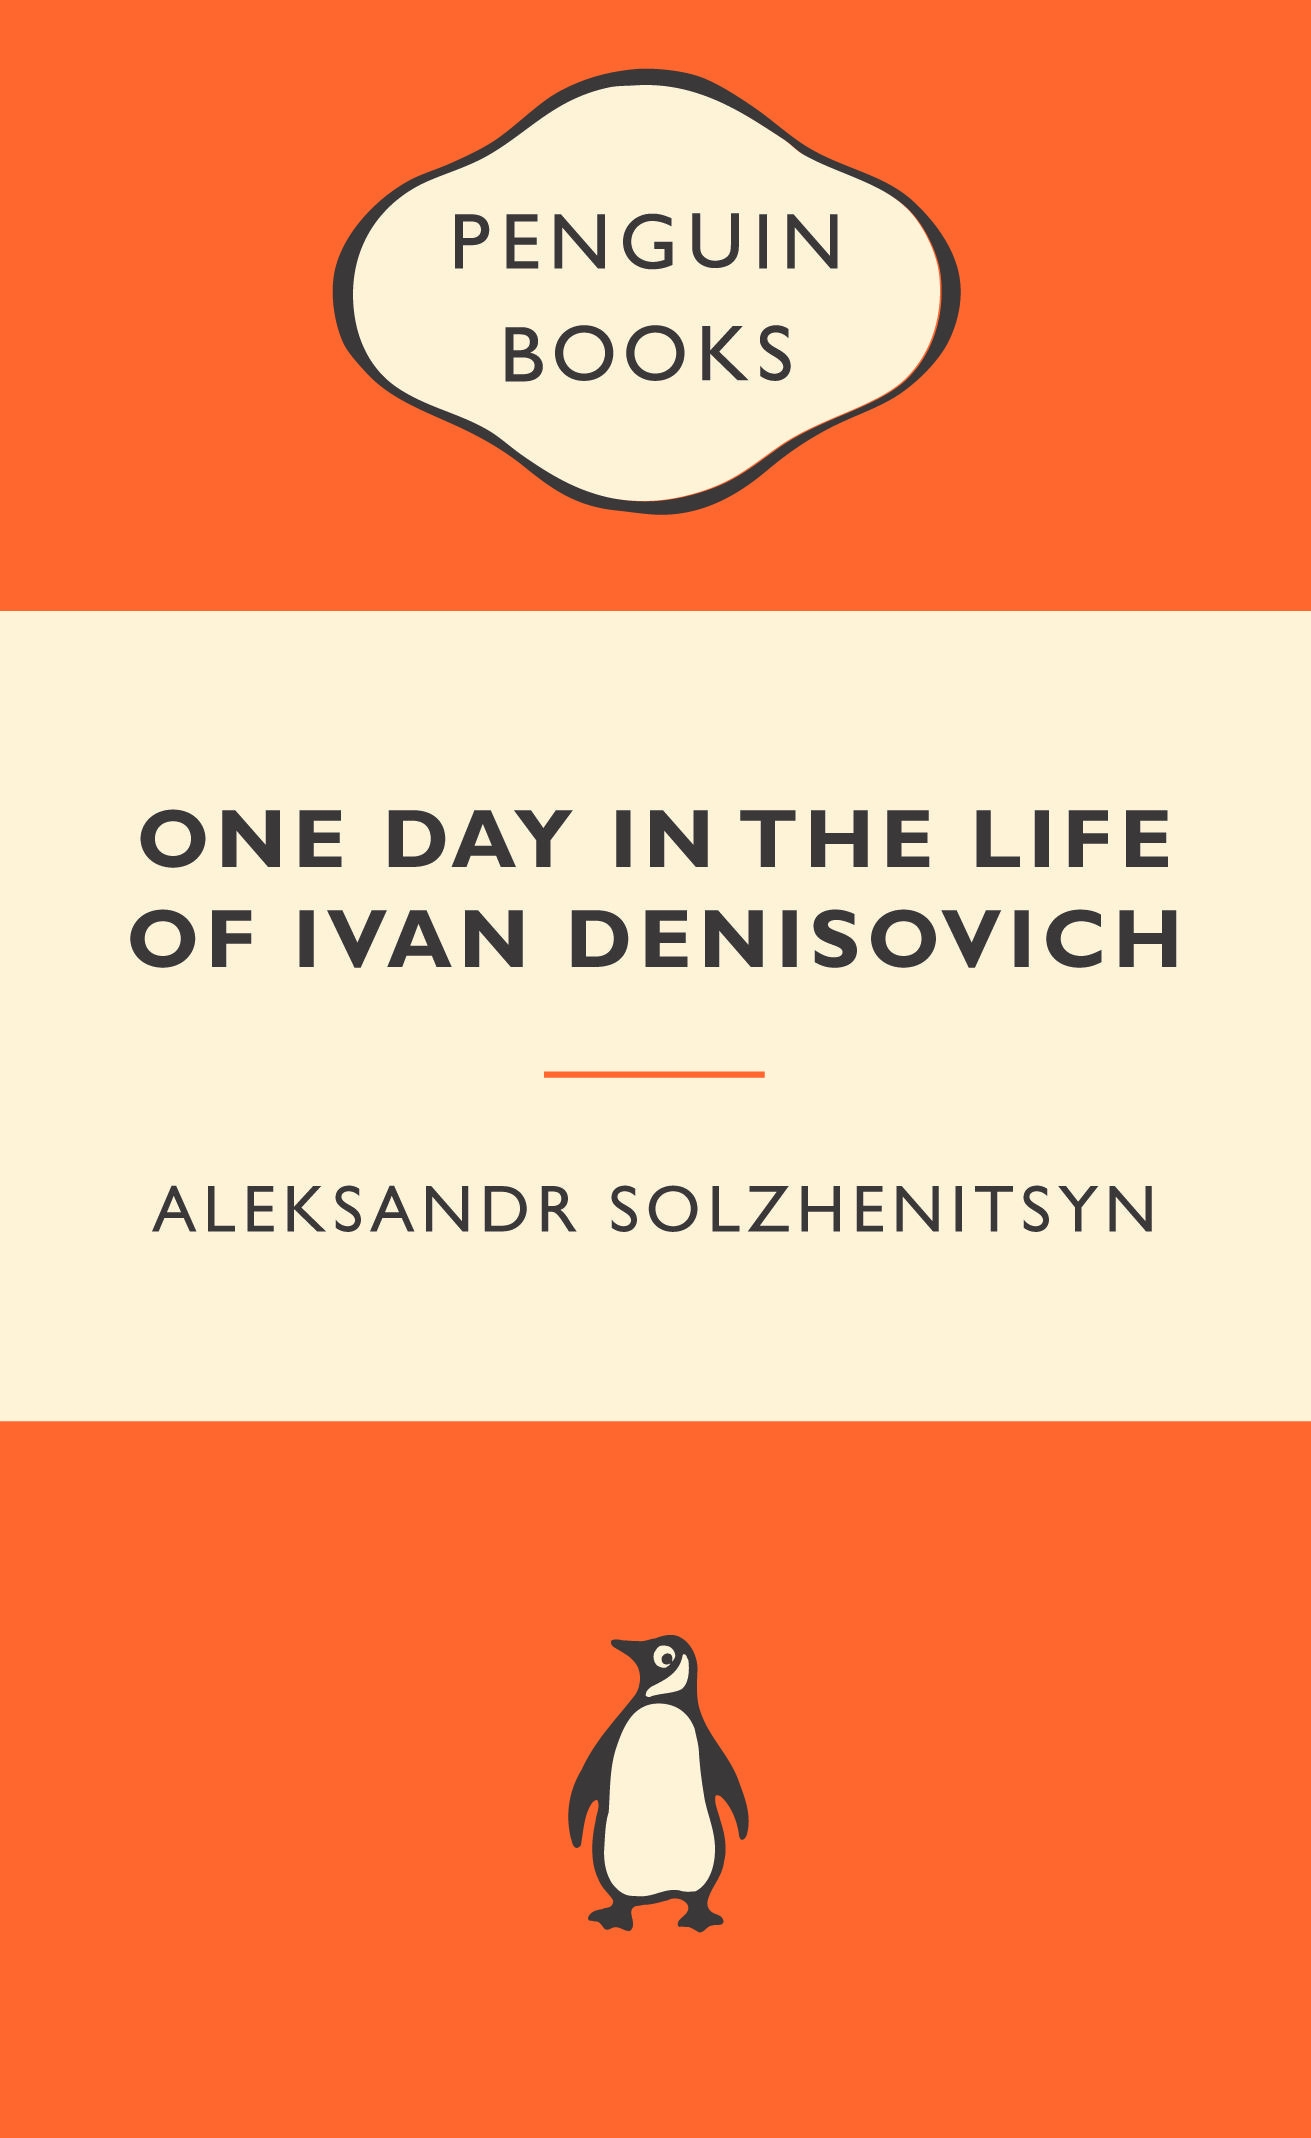 a story of an siberian one day in the life of ivan denisovich shukhov Everything you ever wanted to know about ivan denisovich shukhov in one day in the life of ivan denisovich, written by masters of this stuff just for you.